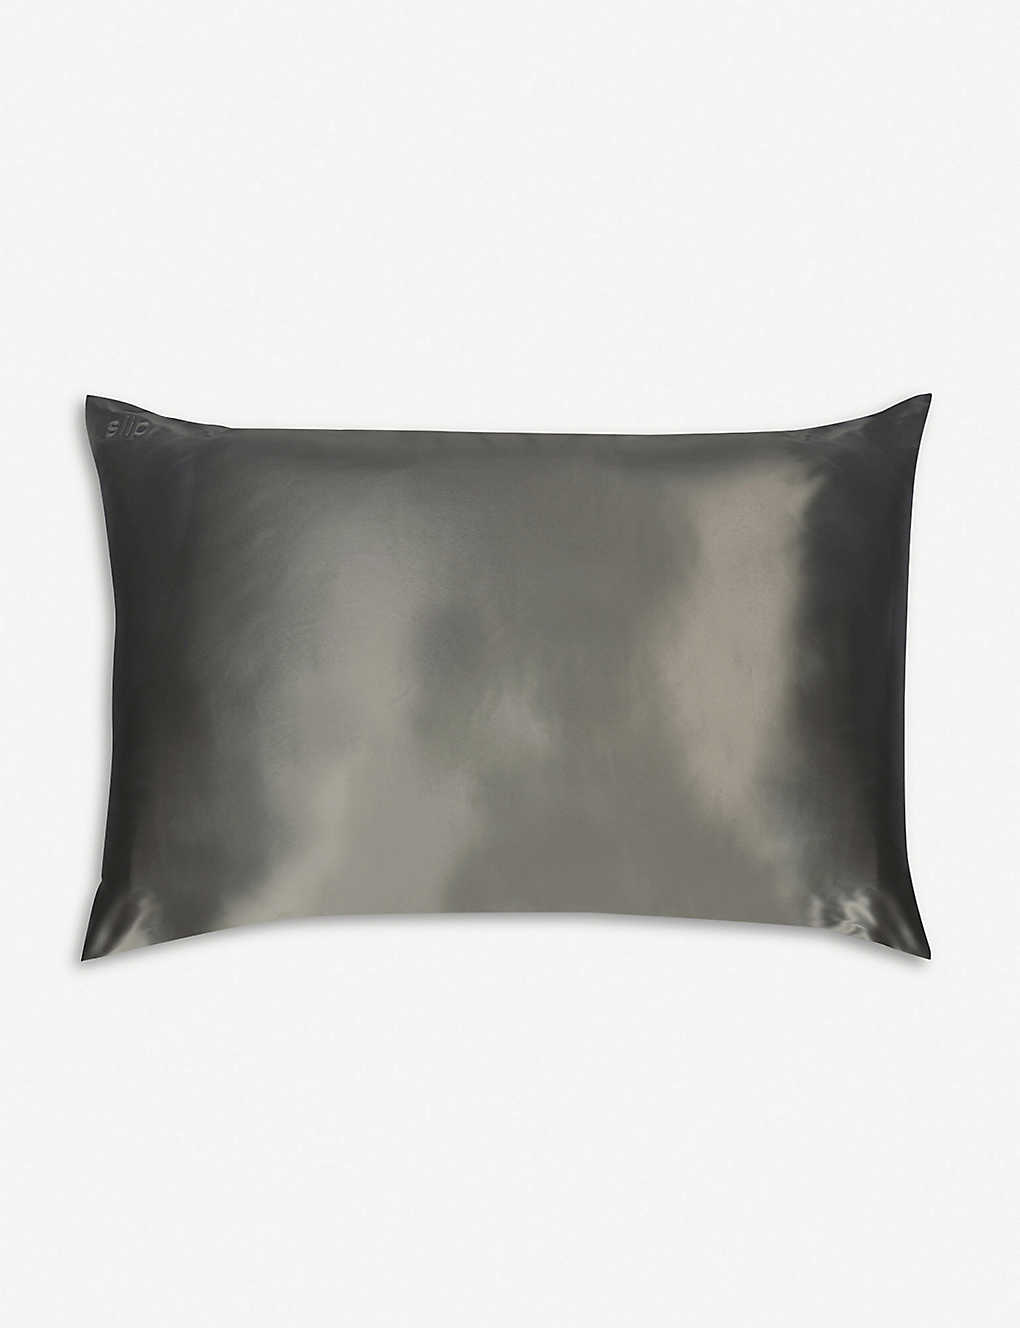 SLIP: Queen silk pillowcase 51cm x 76cm